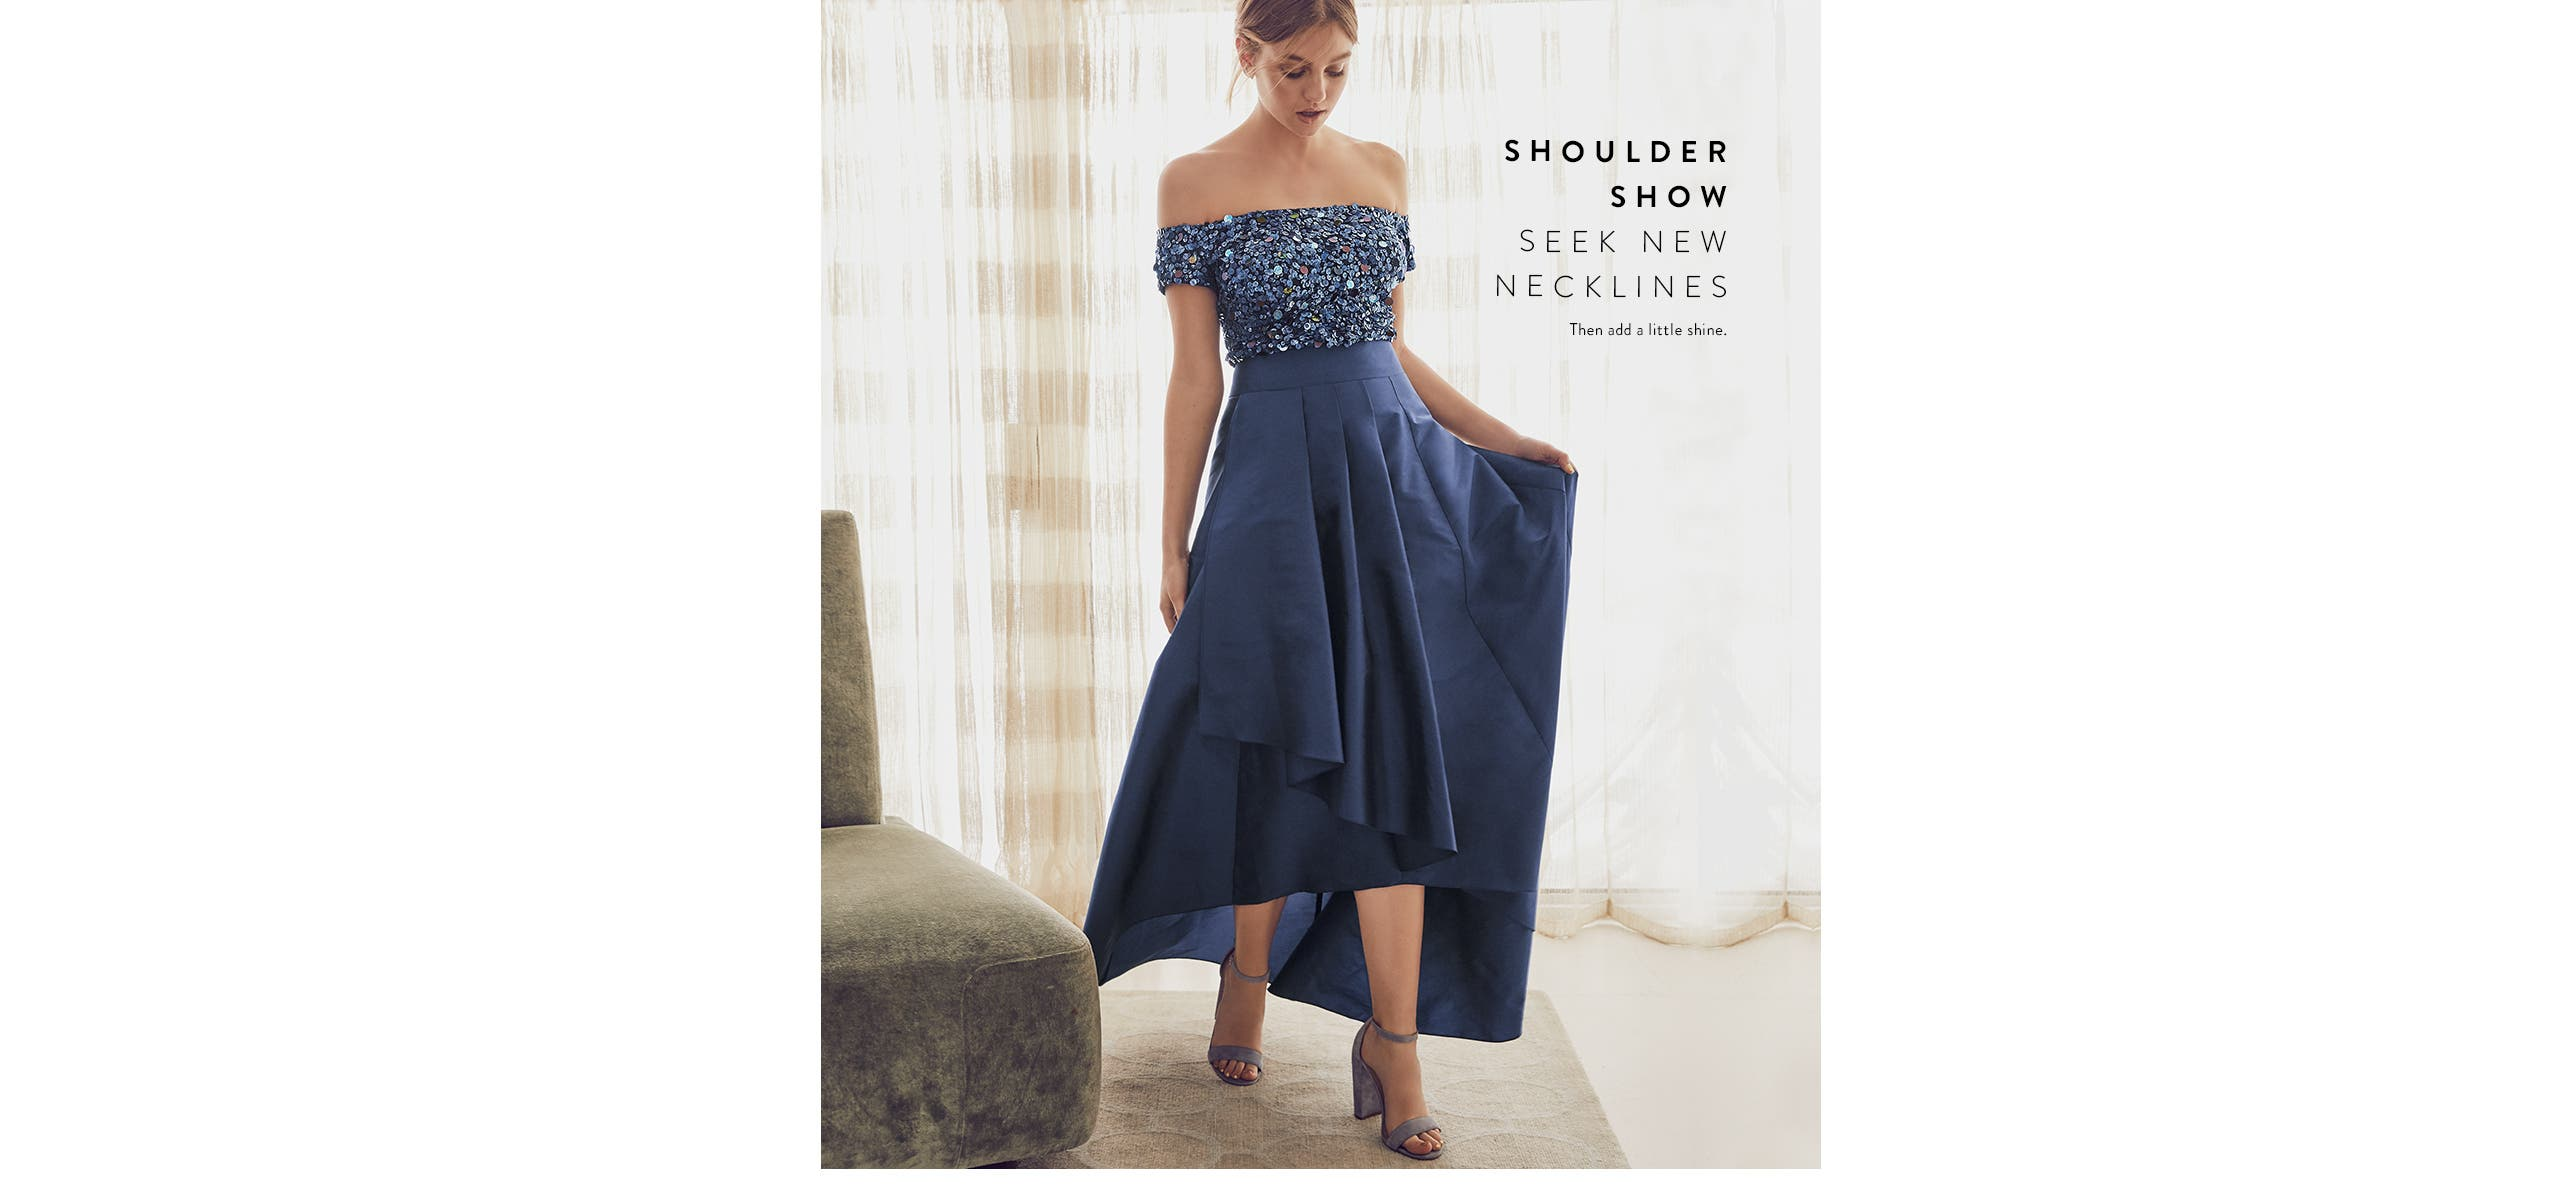 Off-the-shoulder prom dresses. Seek new necklines, then add a little shine.